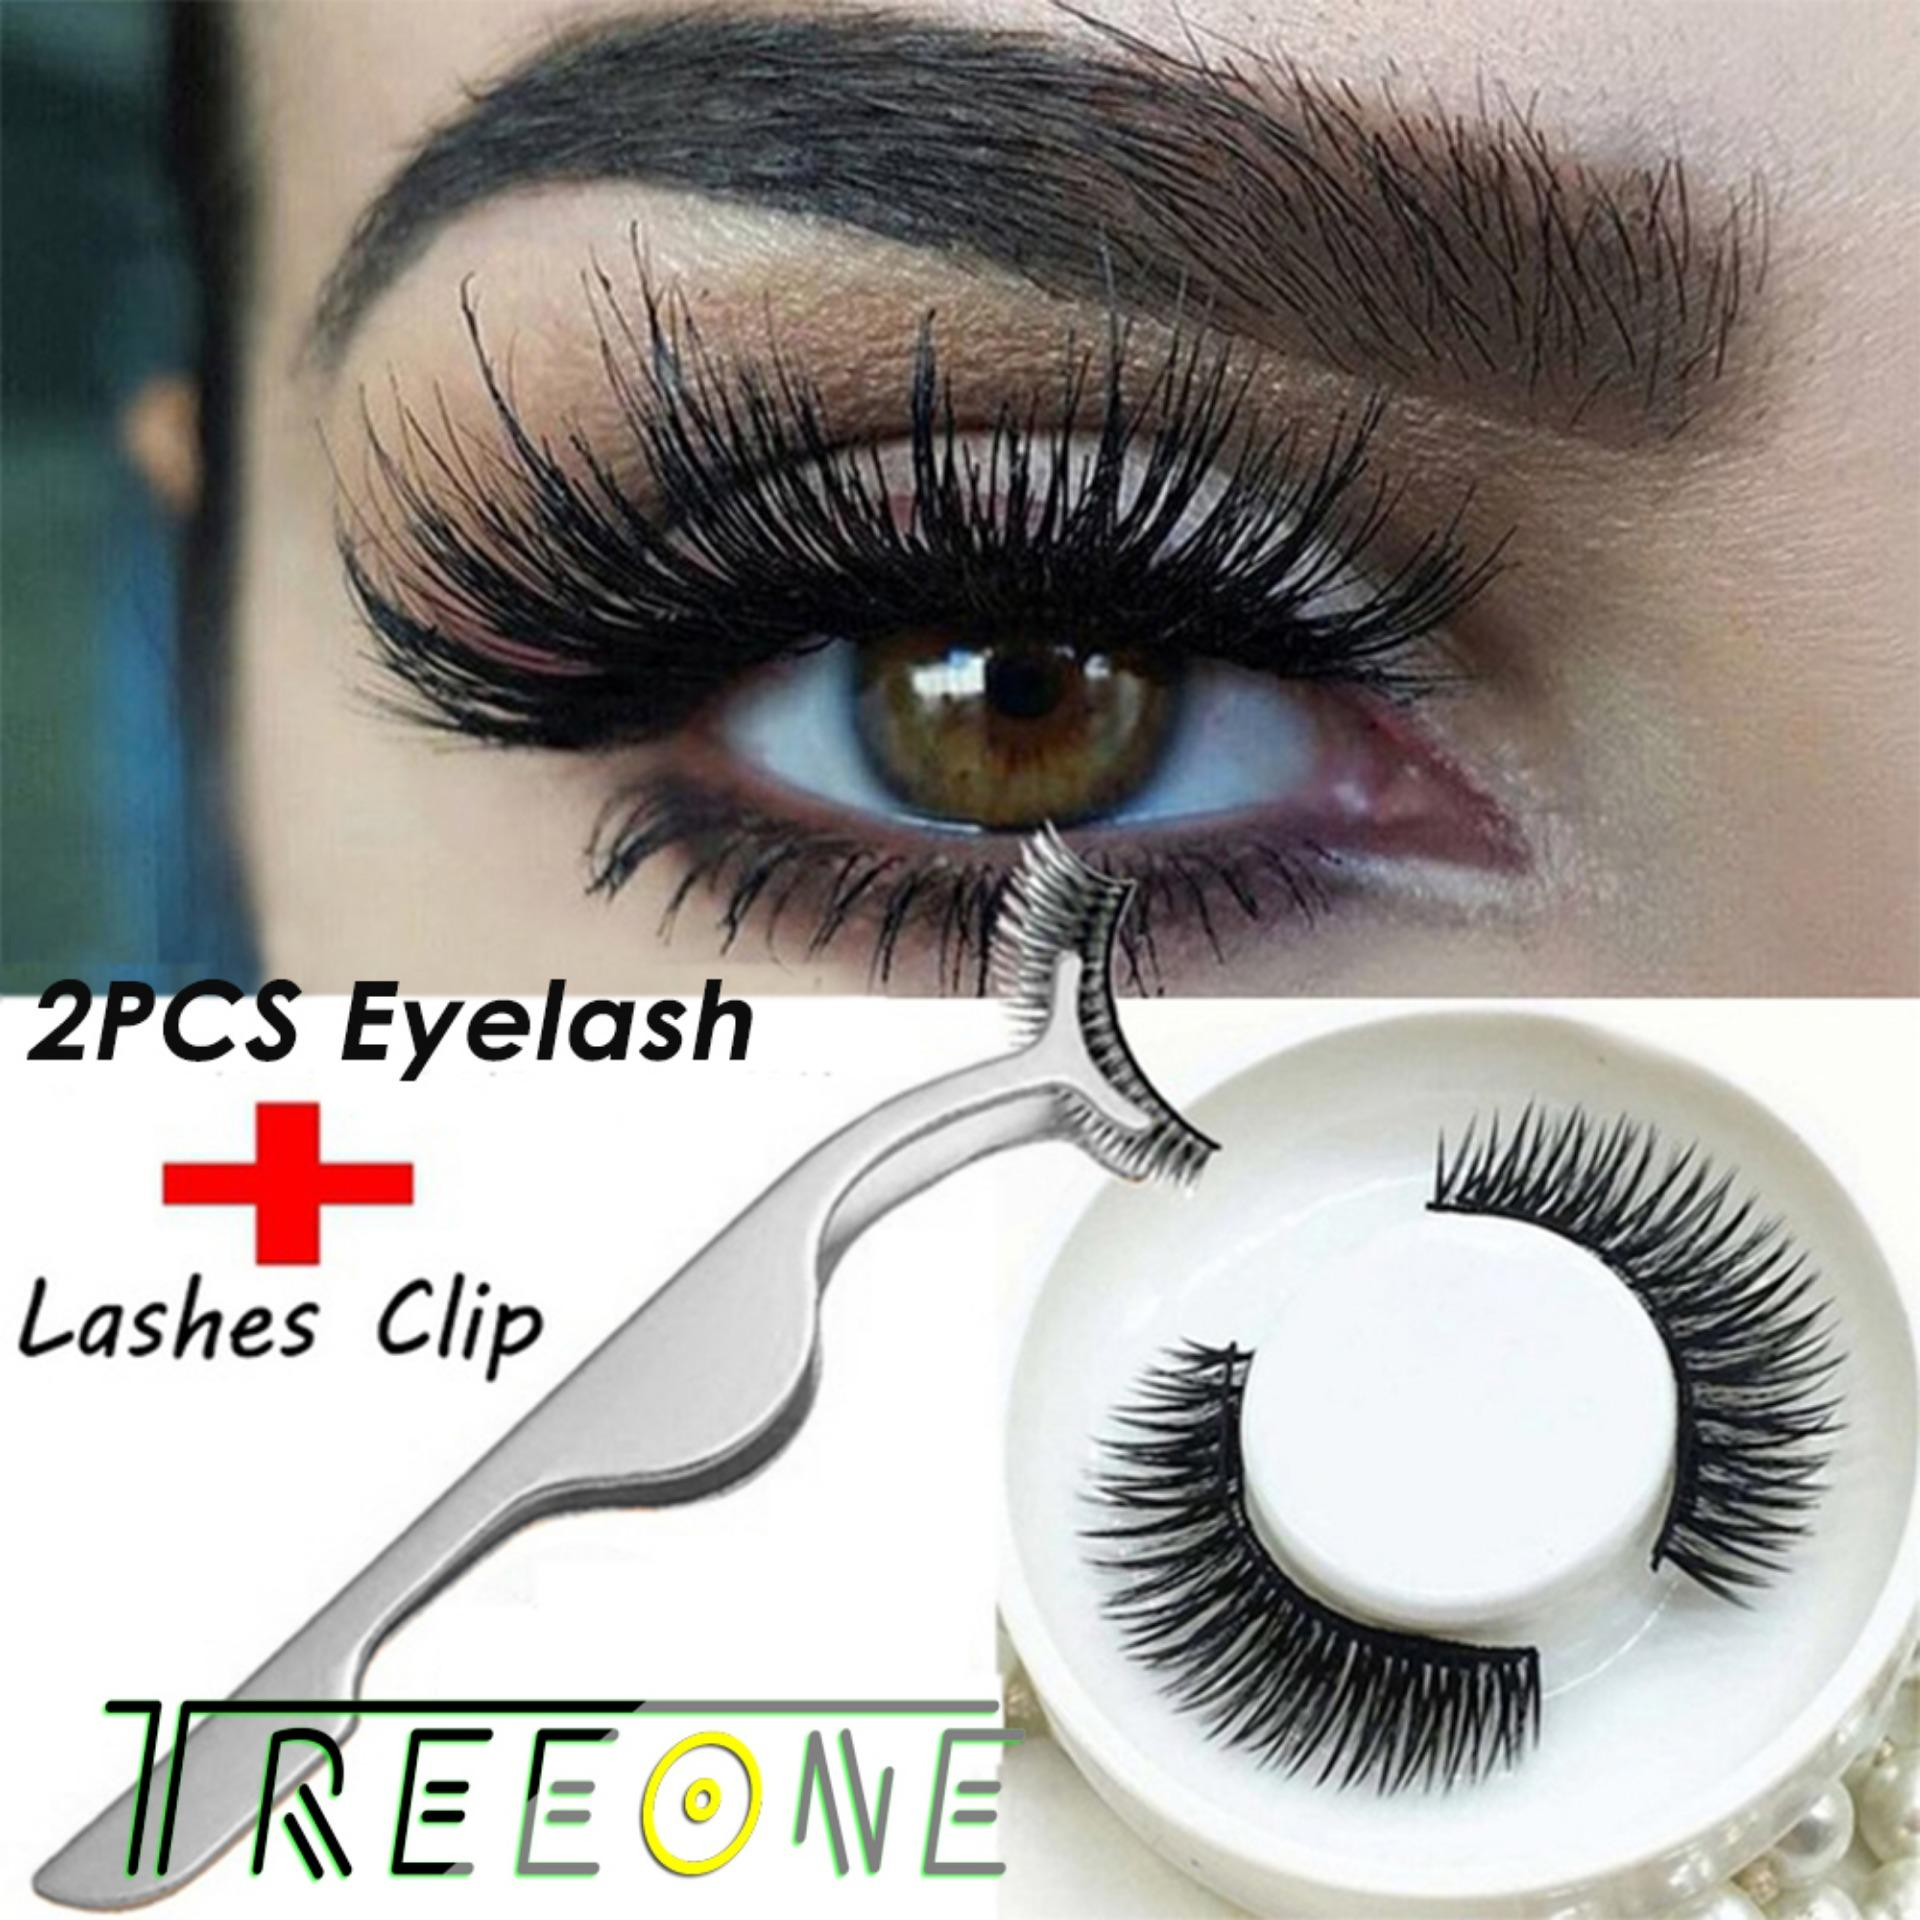 1 Pair 3D Eyelashes Magnet Magnetic False Eyelashes Magnetic Eye Lashes Makeup Kit + 1Pcs False Eyelash Clip Philippines